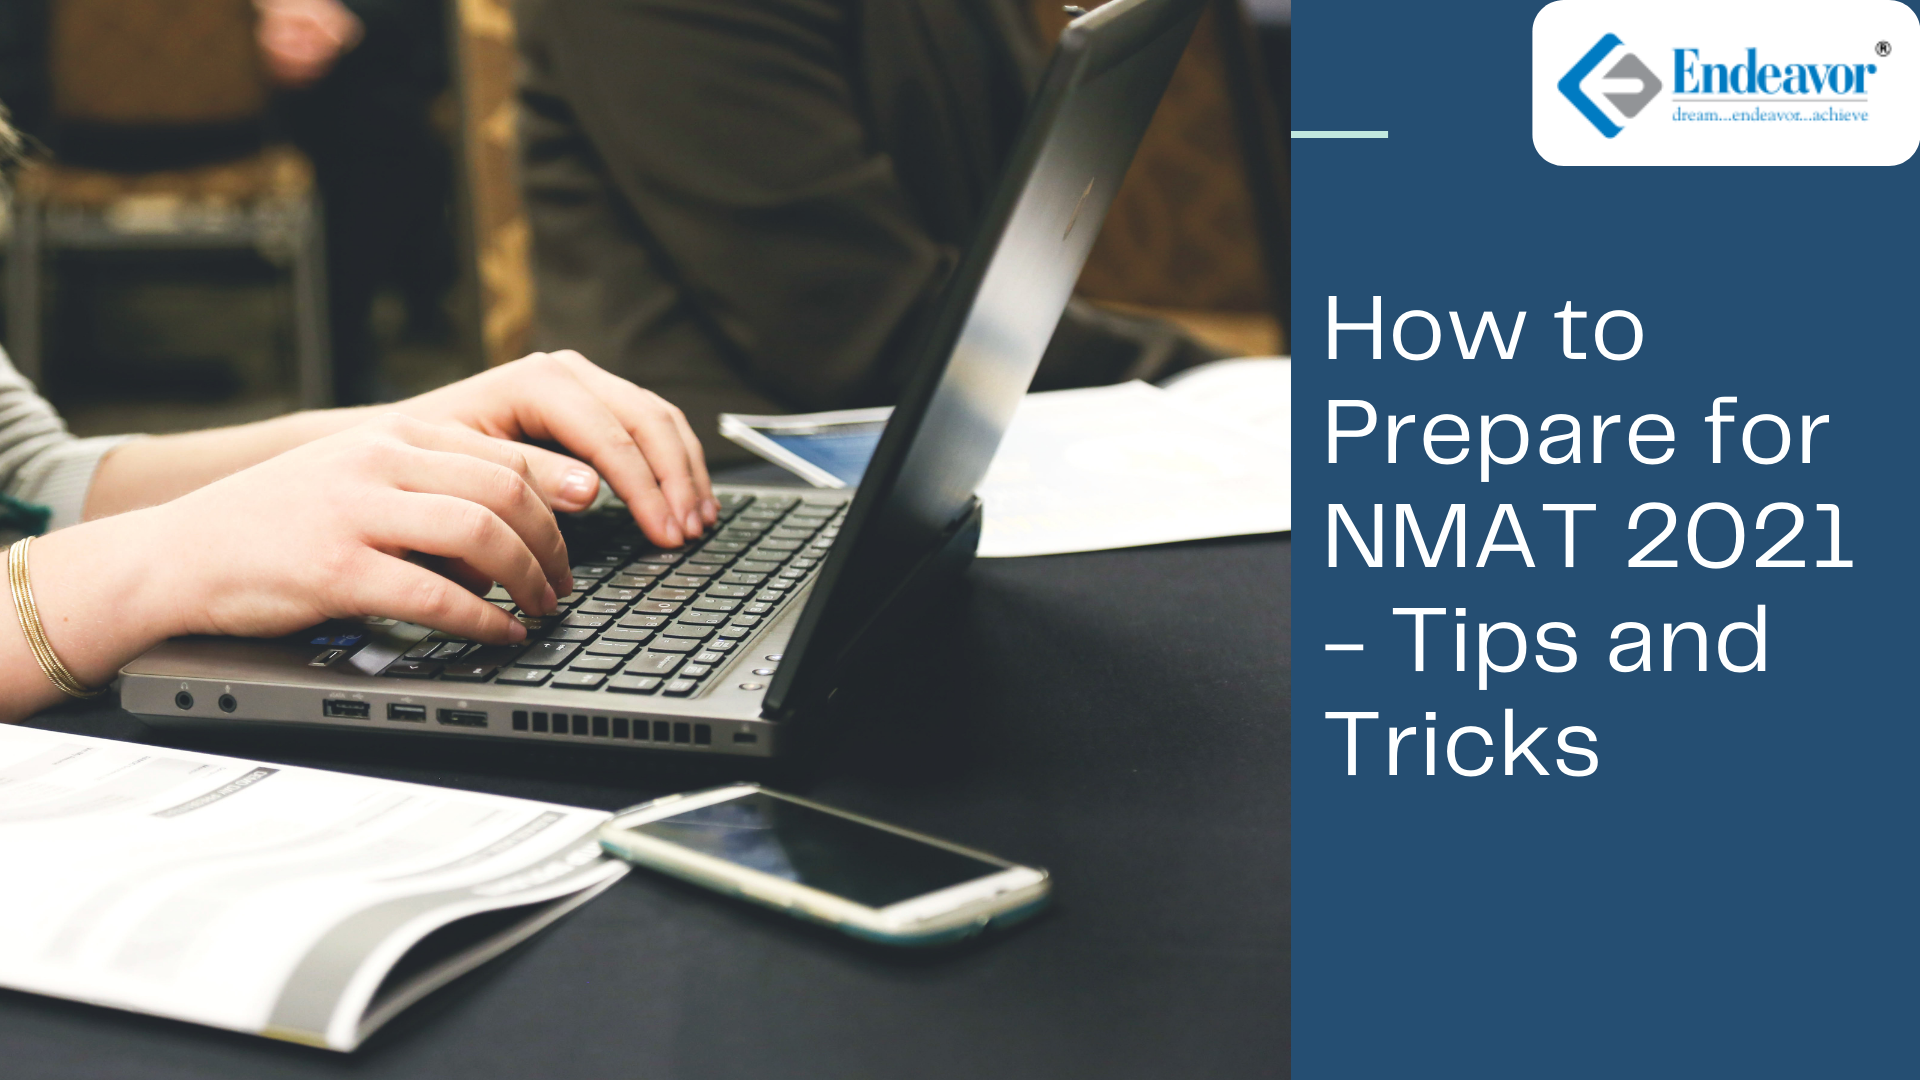 How to Prepare for NMAT 2021 - Tips and Tricks